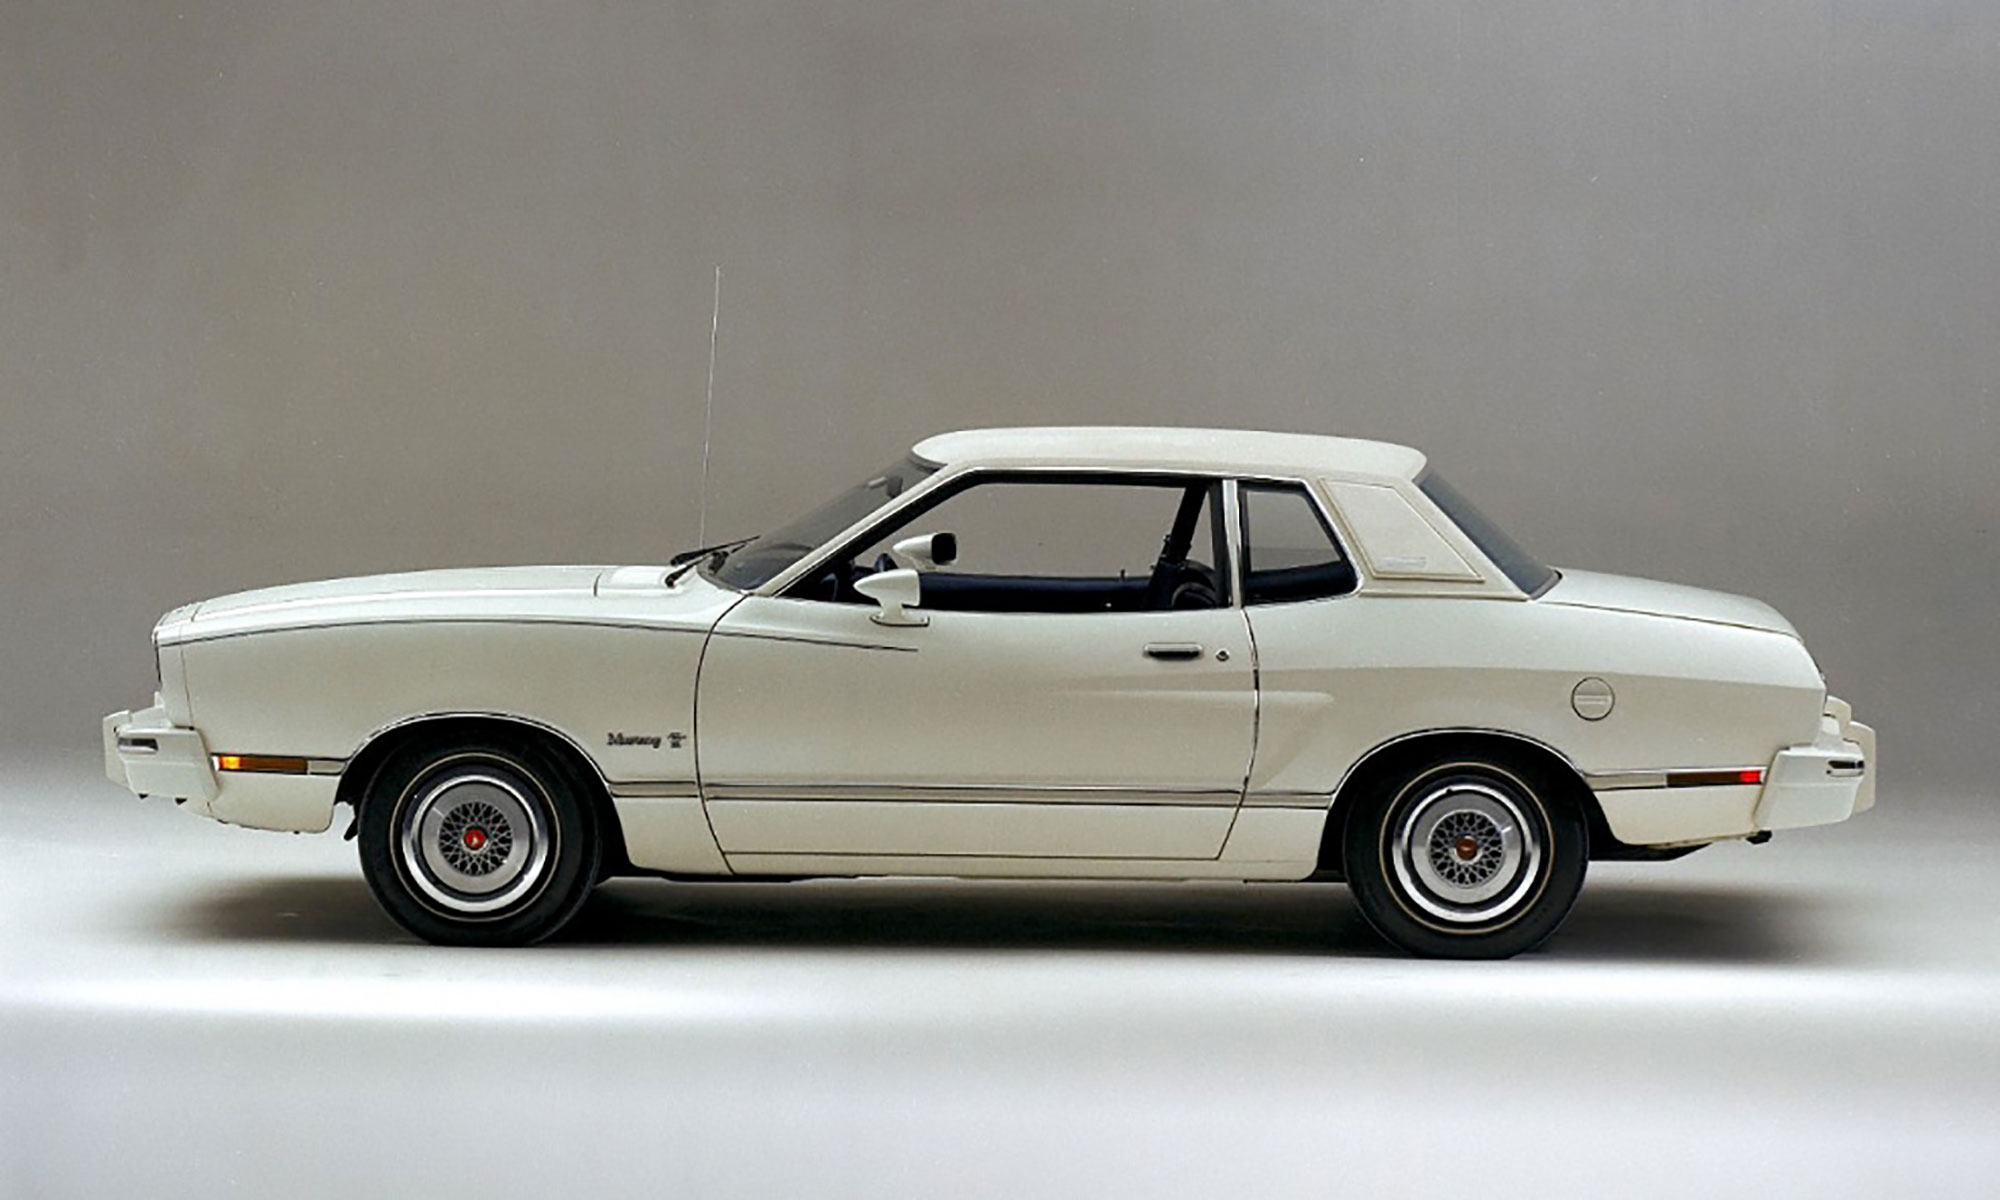 Mustang II side profile